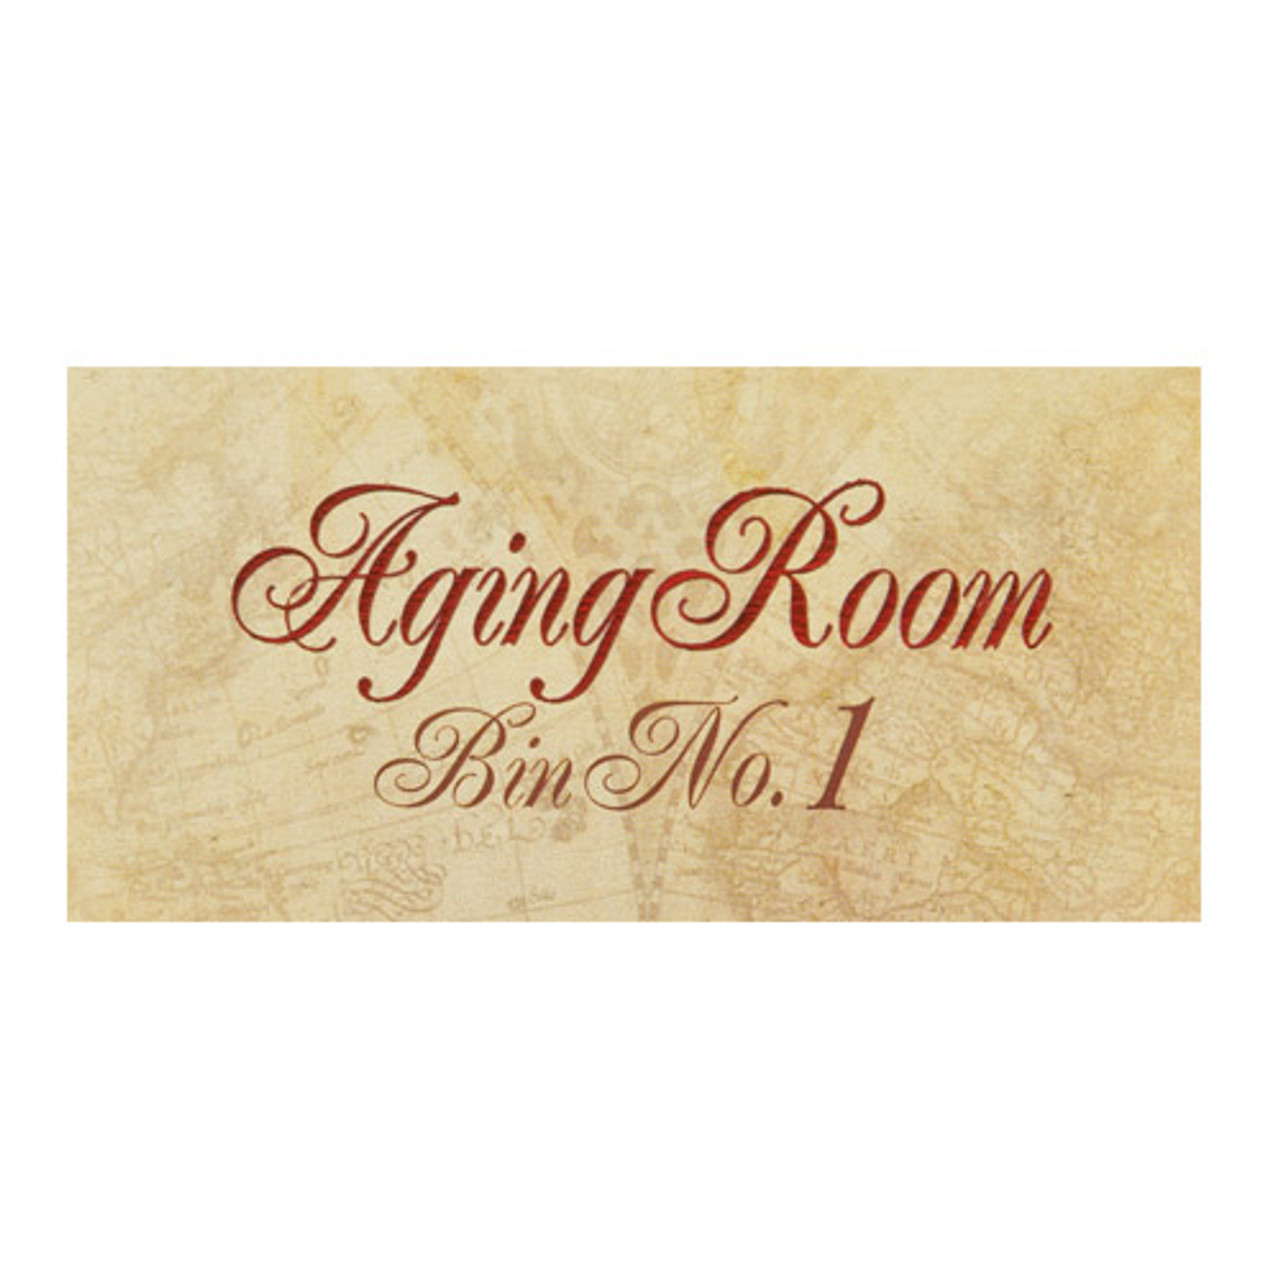 Aging Room Bin No. 1 D Major Cigars - 6 x 54 (Box of 18)